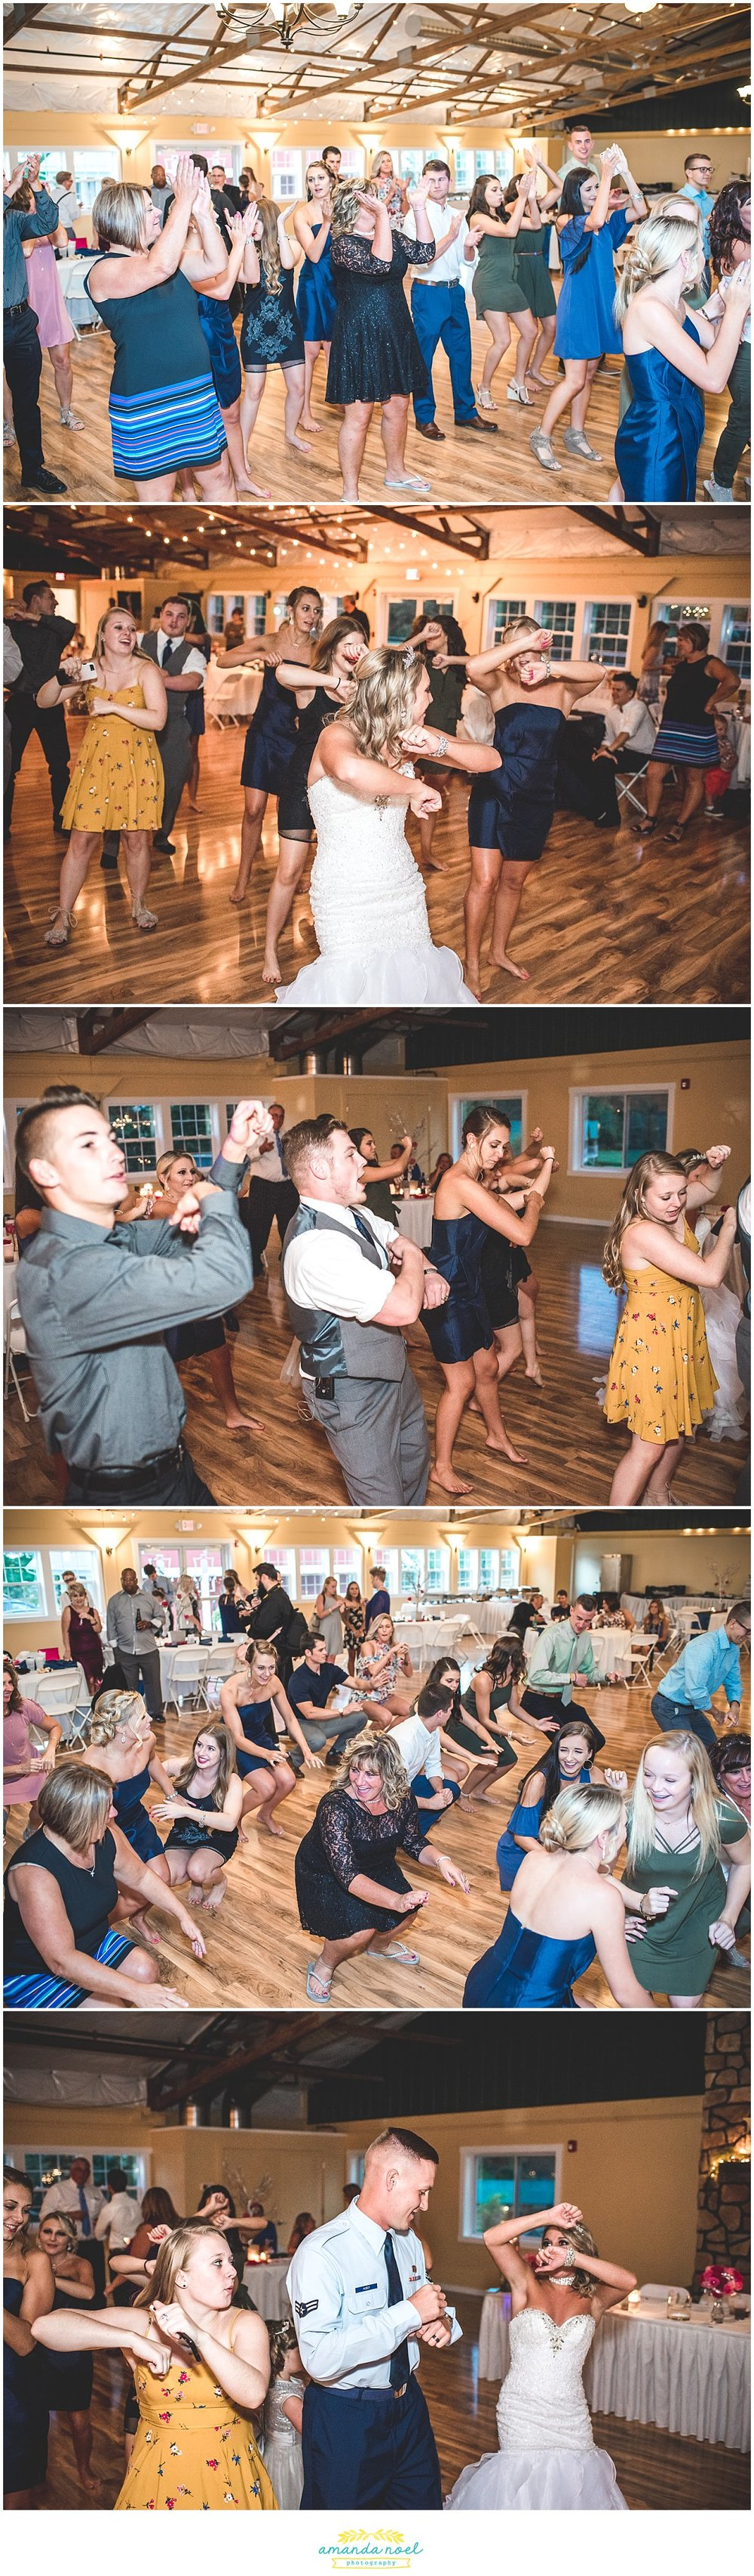 Springfield Ohio Wedding candid dancing